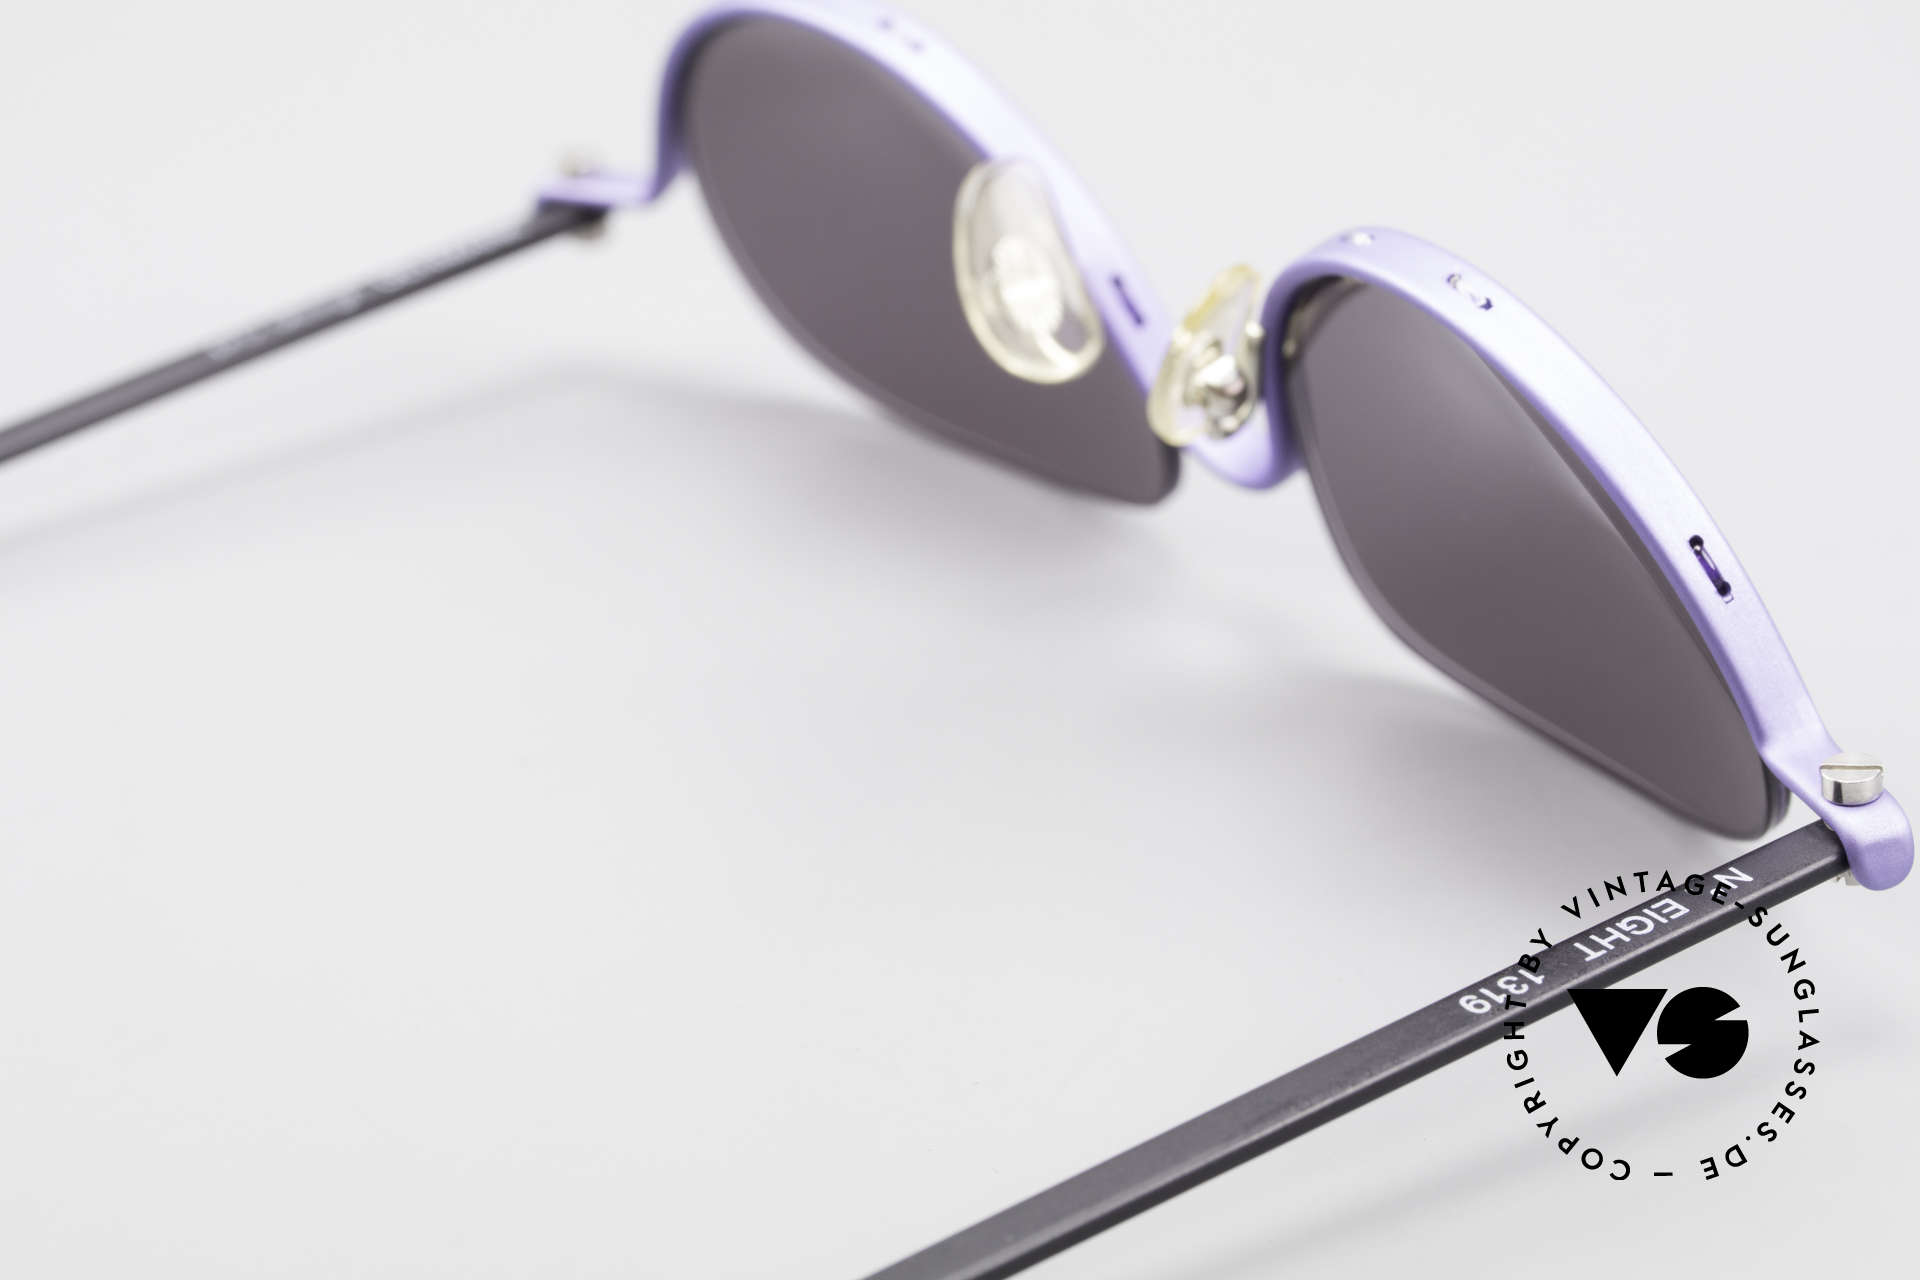 ProDesign No8 Gail Spence Design Eyeglasses, sun lenses could be replaced with prescription lenses, Made for Women